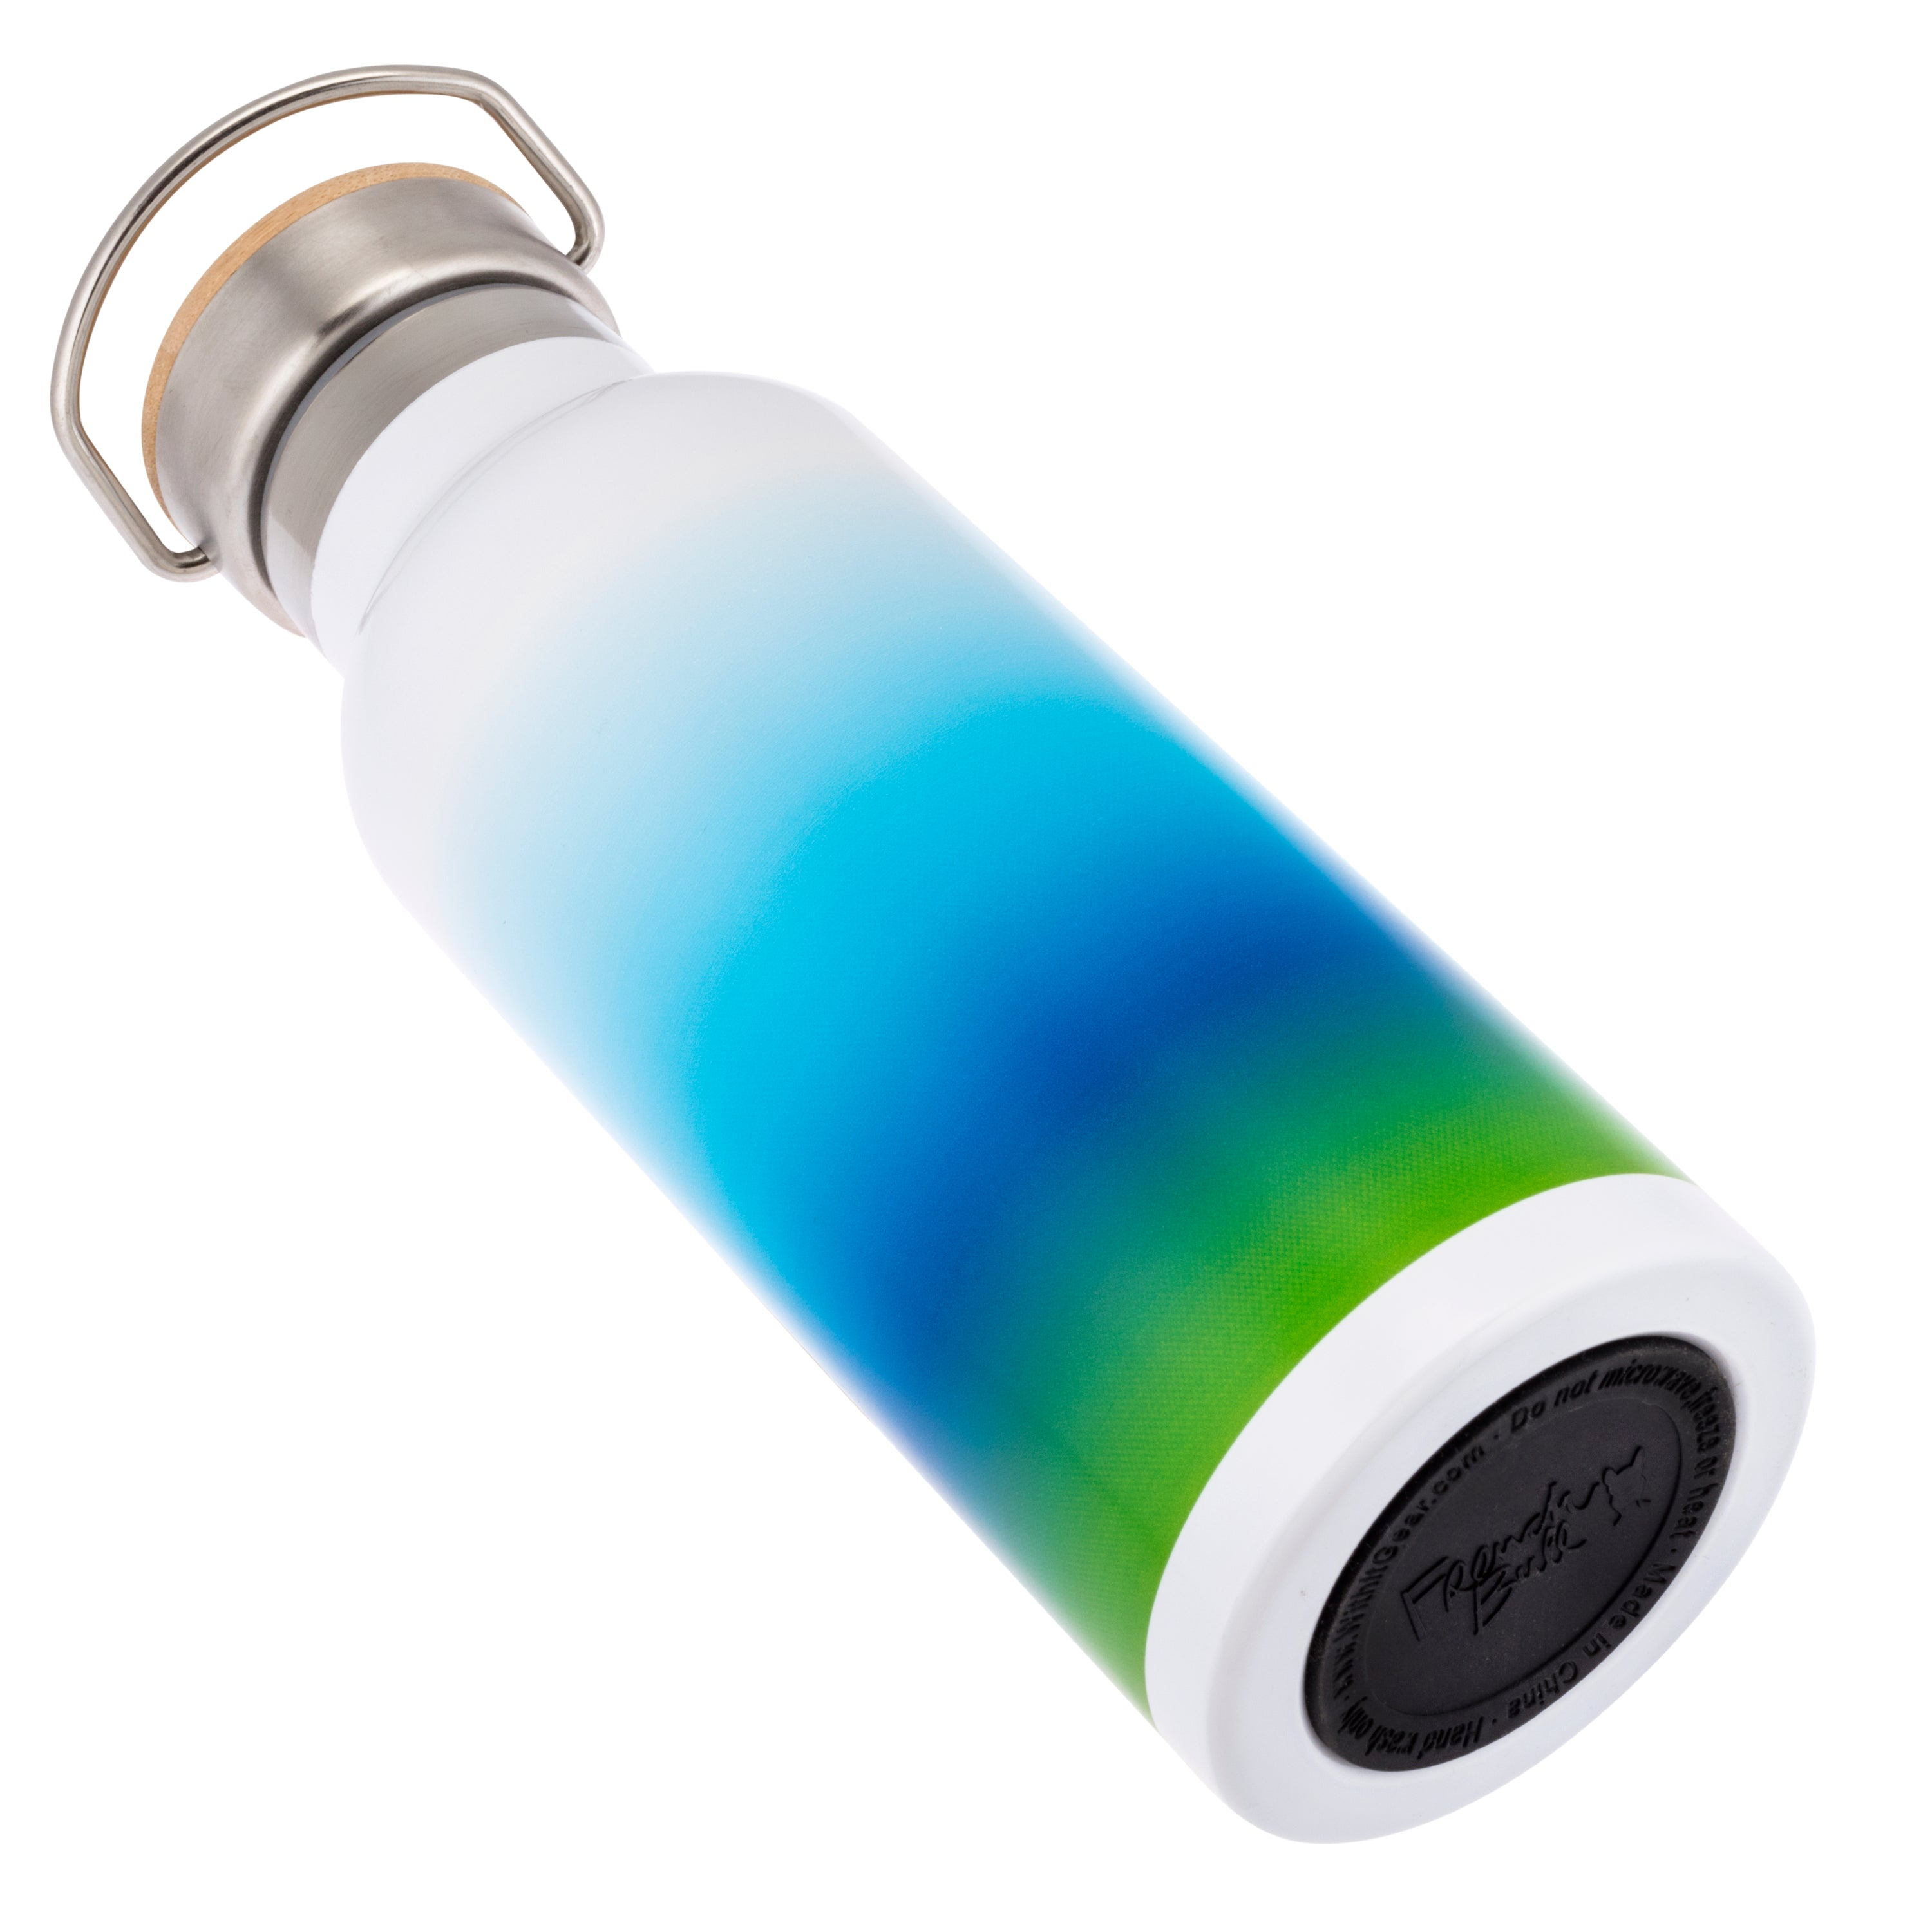 French Bull Stainless Steel Insulated Water Bottle Blue Ombre